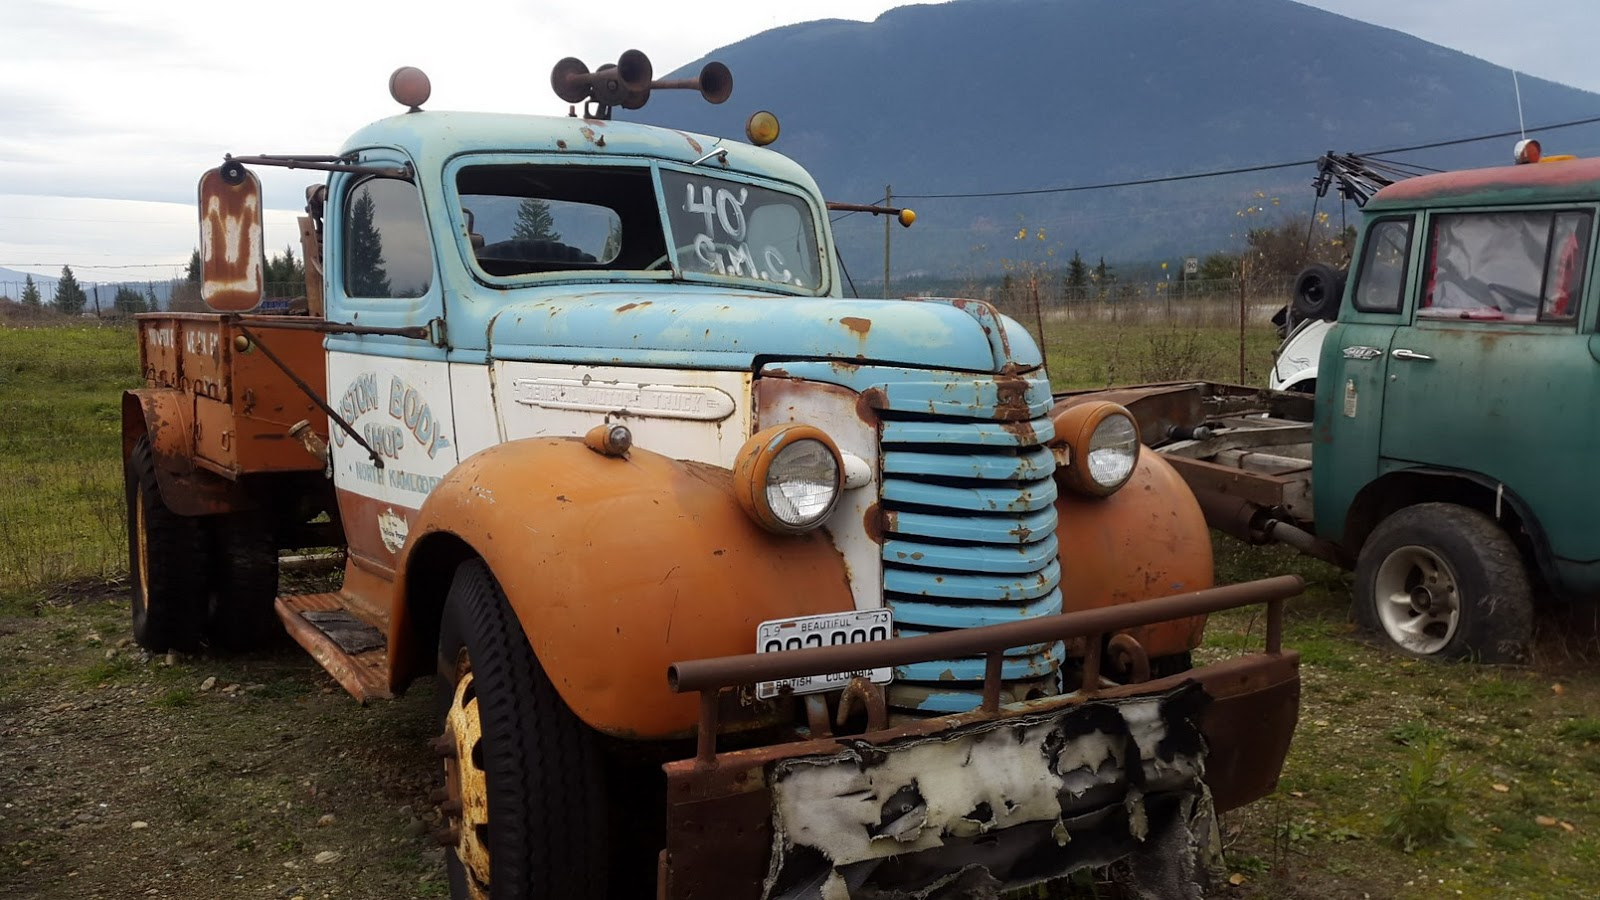 Cool Vintage Junkyard For Sale « O\' Canada